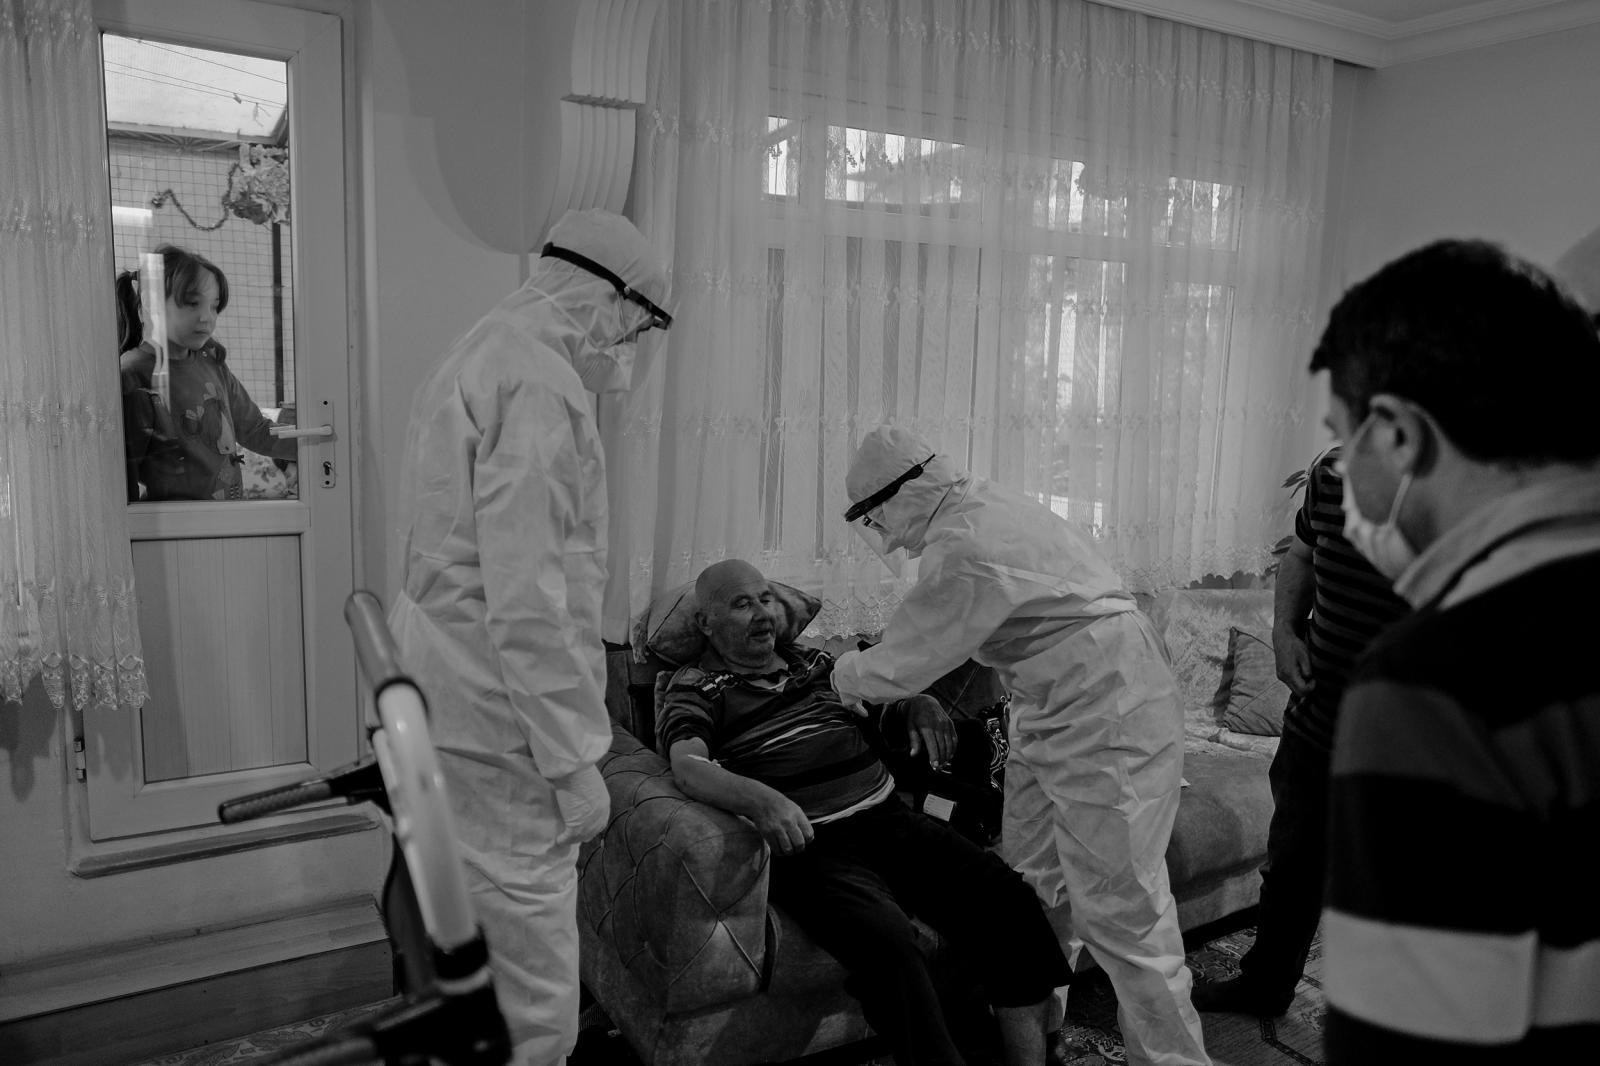 ISTANBUL, TURKEY, MAY 11- 112 Emergency Healthcare teams do the first response to a patient at home, wearing protective clothing in Küçükçekmece, ā°stanbul. The grandchildren of the sick person watch the healthcare professionals and their grandfather behind the window.